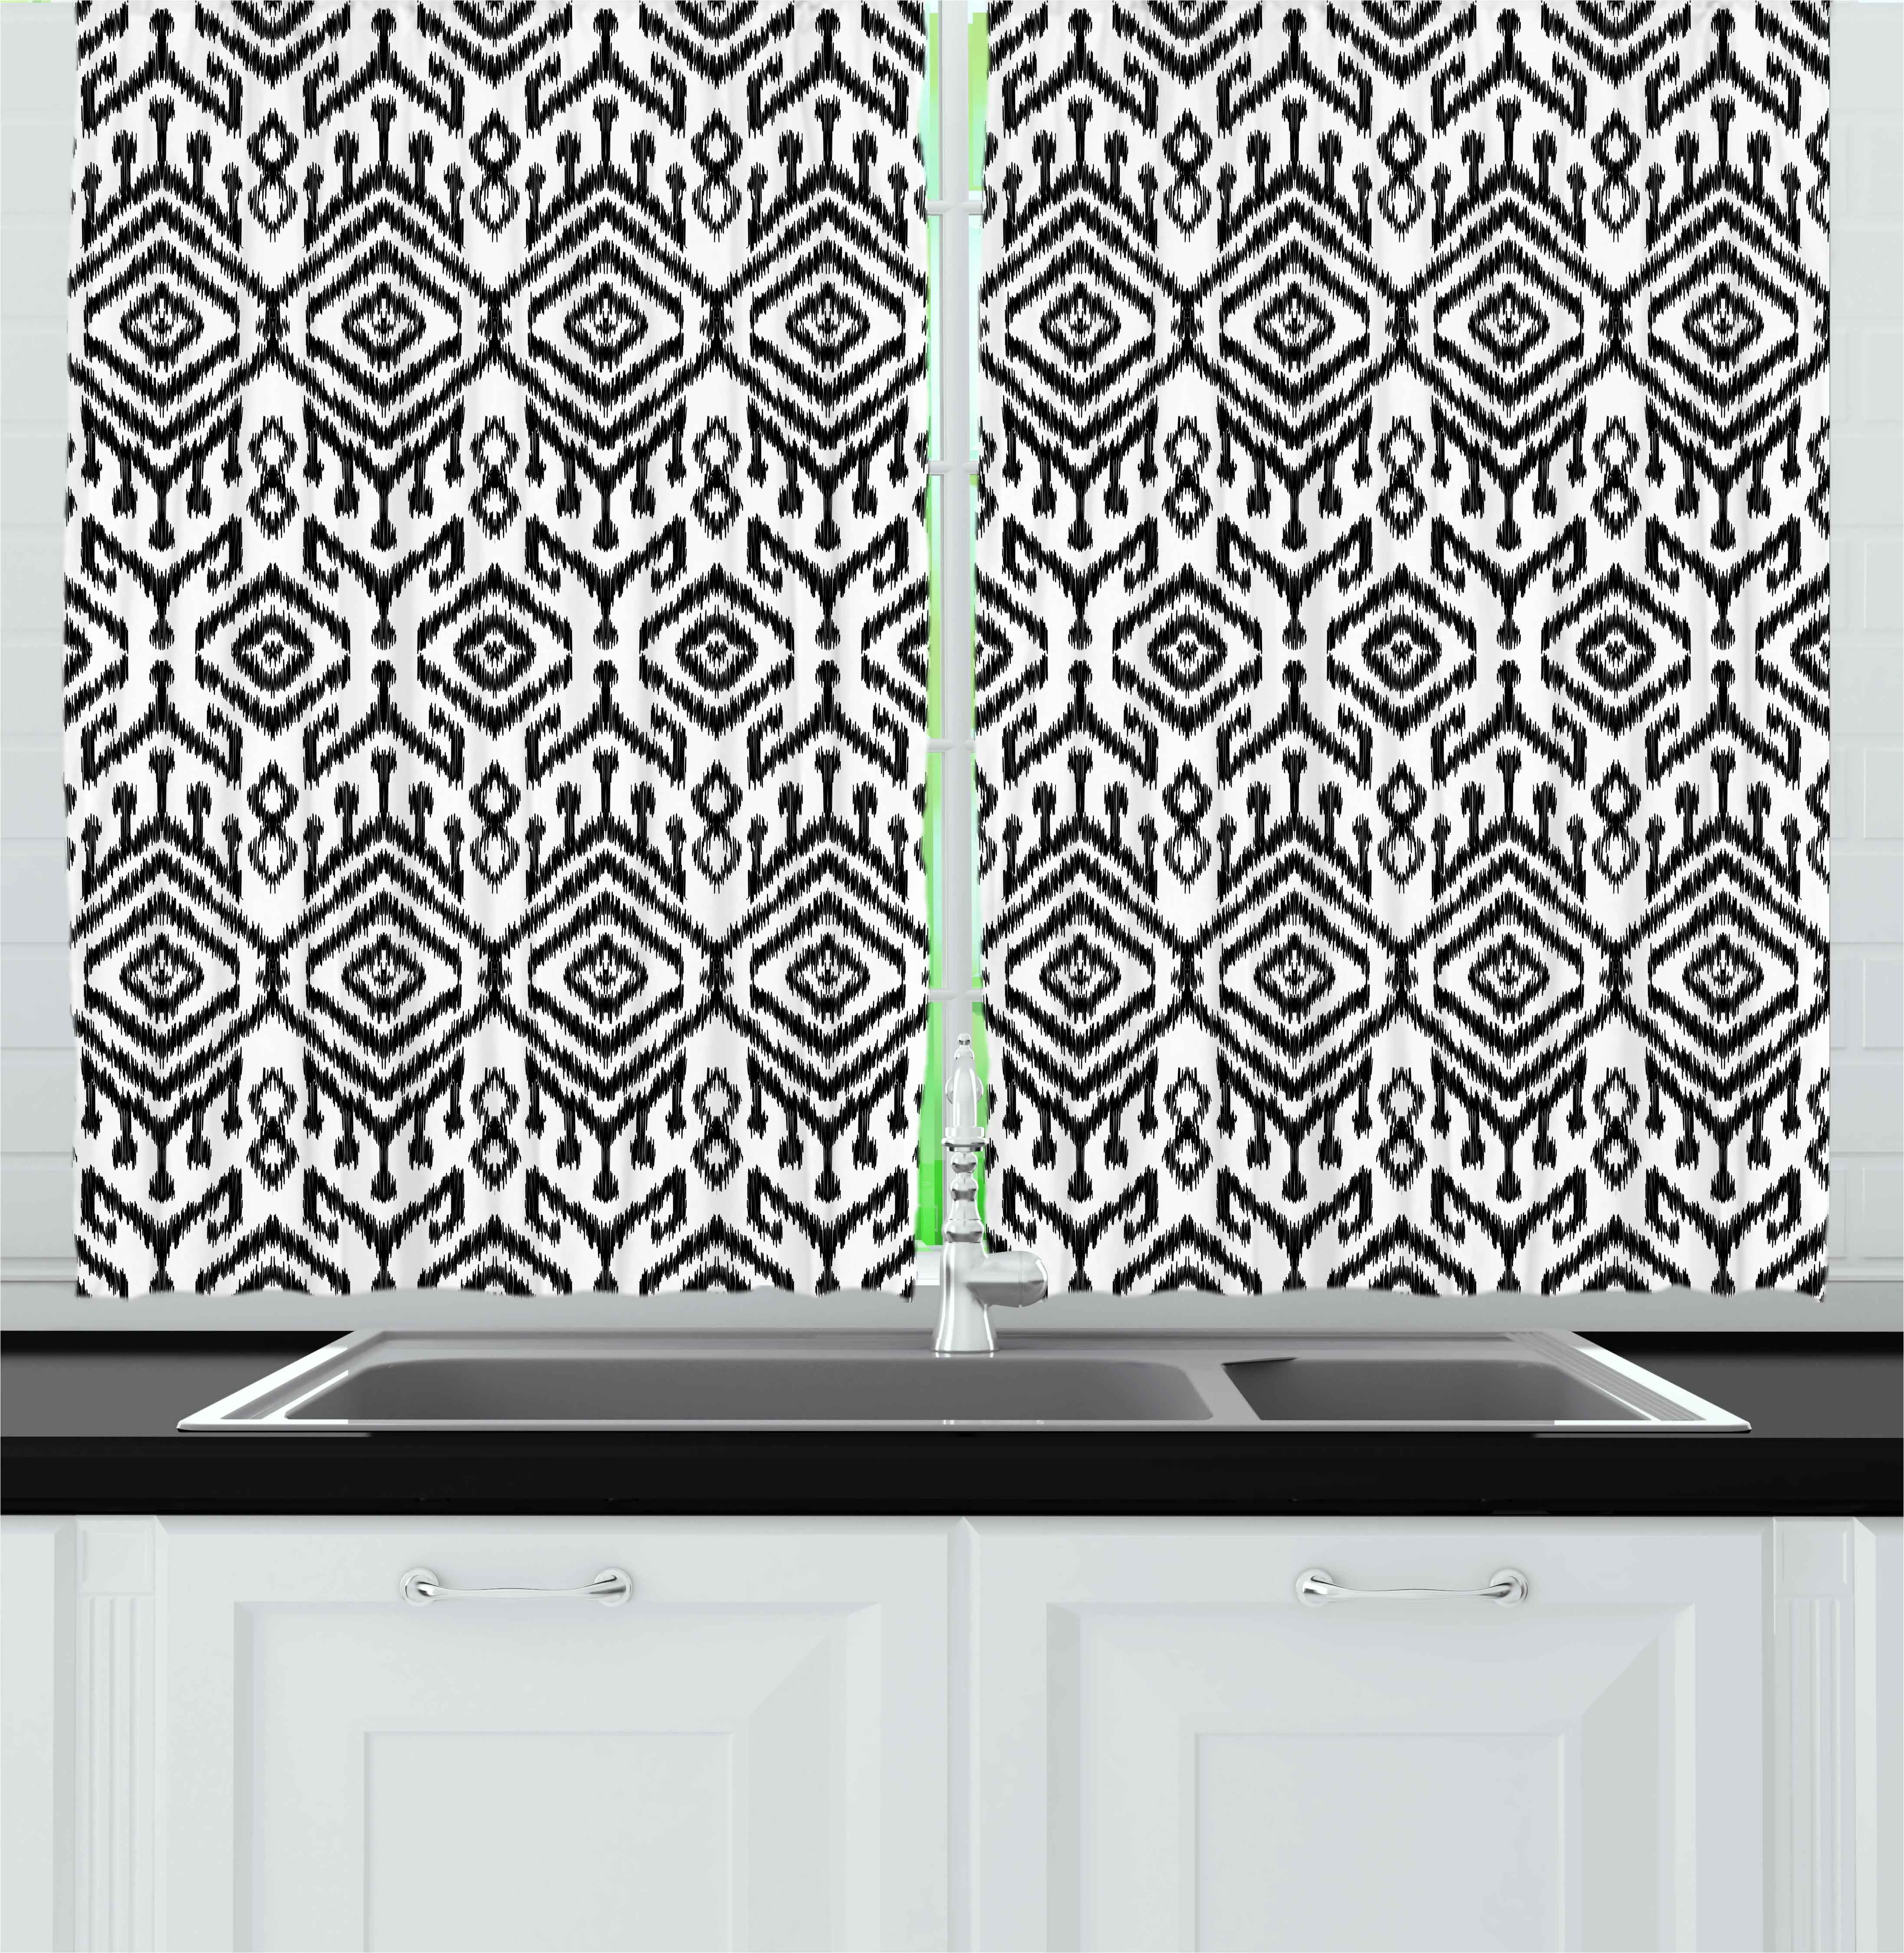 Black and White Curtains 2 Panels Set, Monochrome Ikat Pattern Bohemian  Ethnic Authentic Chevron Modern Scribble, Window Drapes for Living Room ...